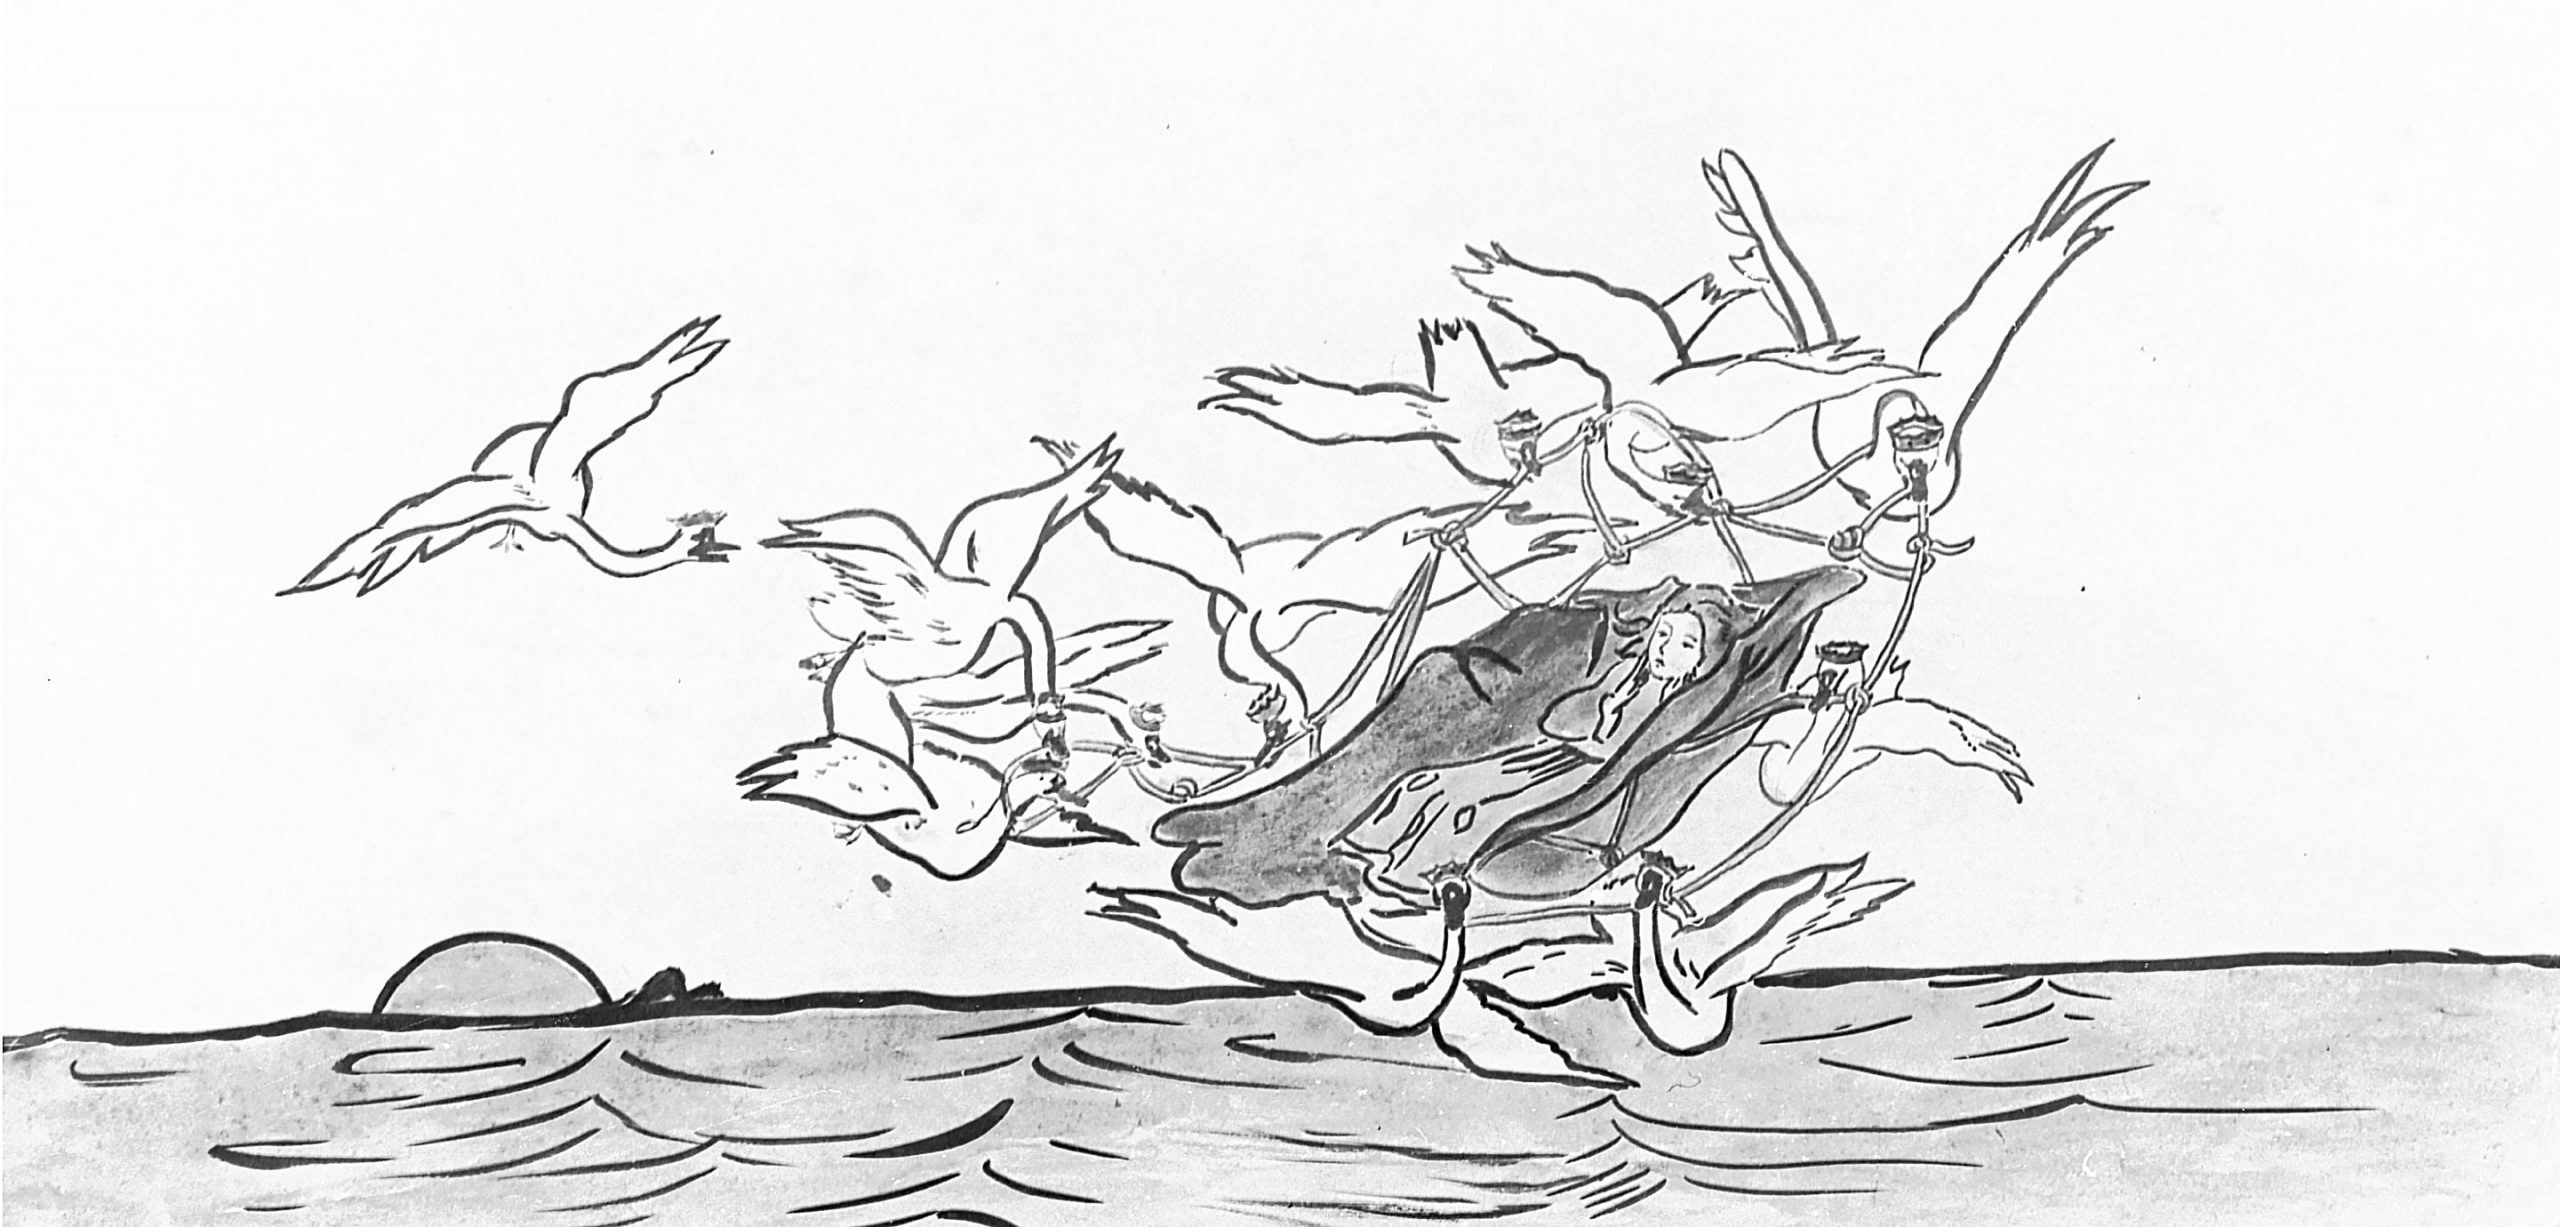 Image of a woman being carried through the air by swans.